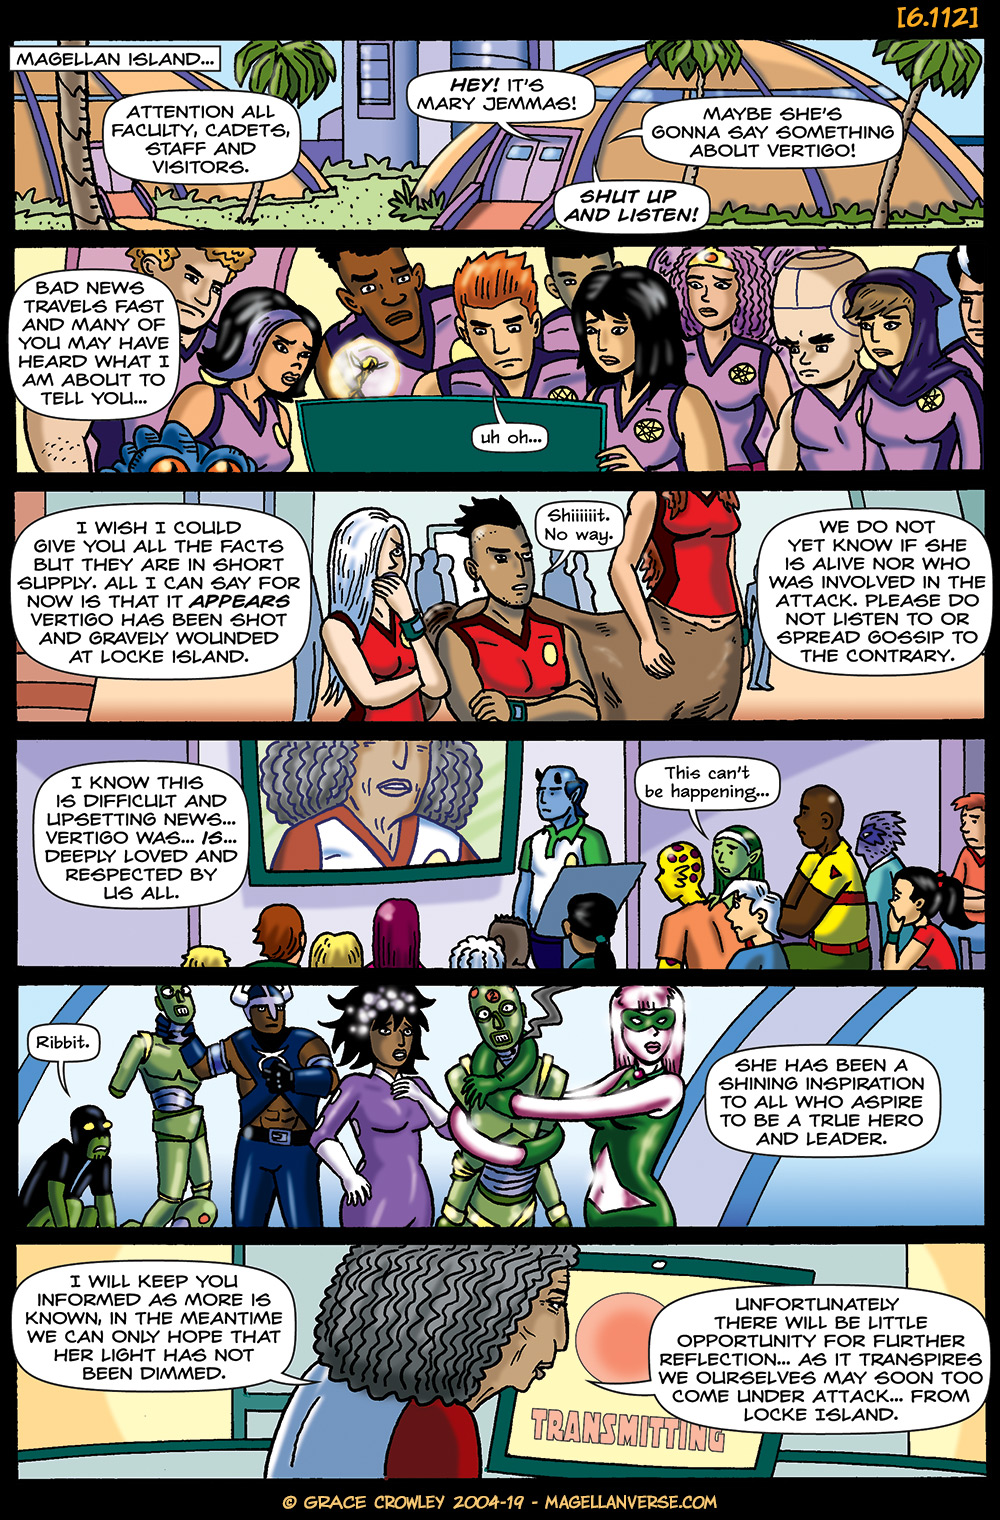 Page 6.112